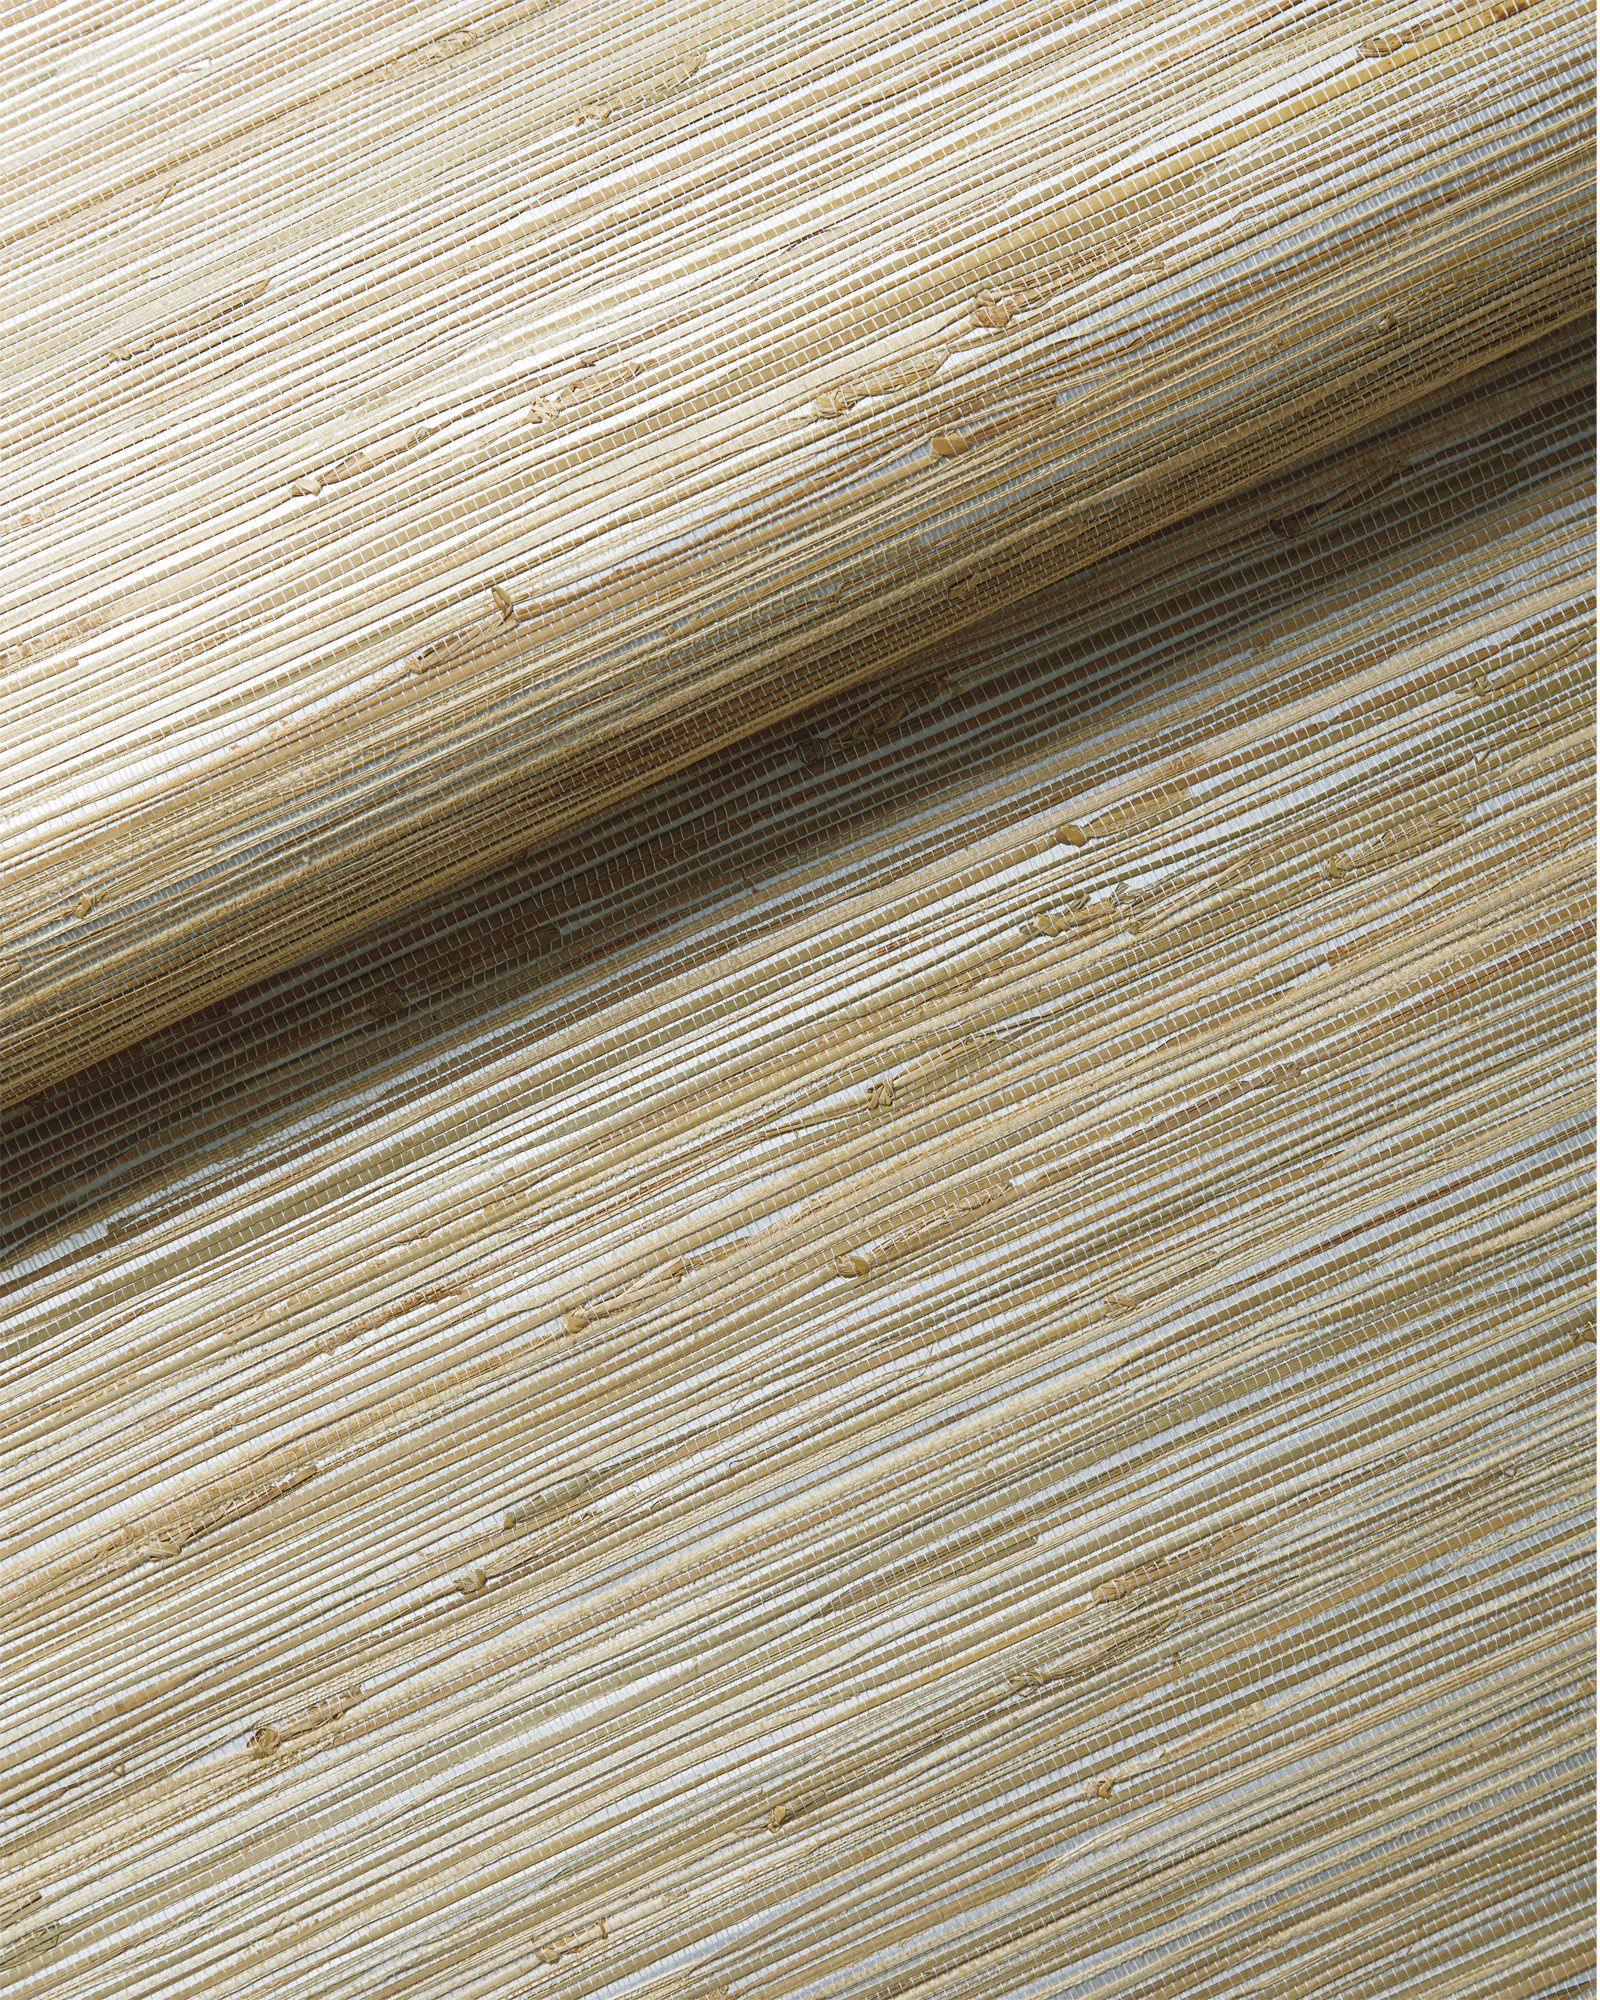 Grasscloth Wallcovering in 2020 Natural home decor, Chic